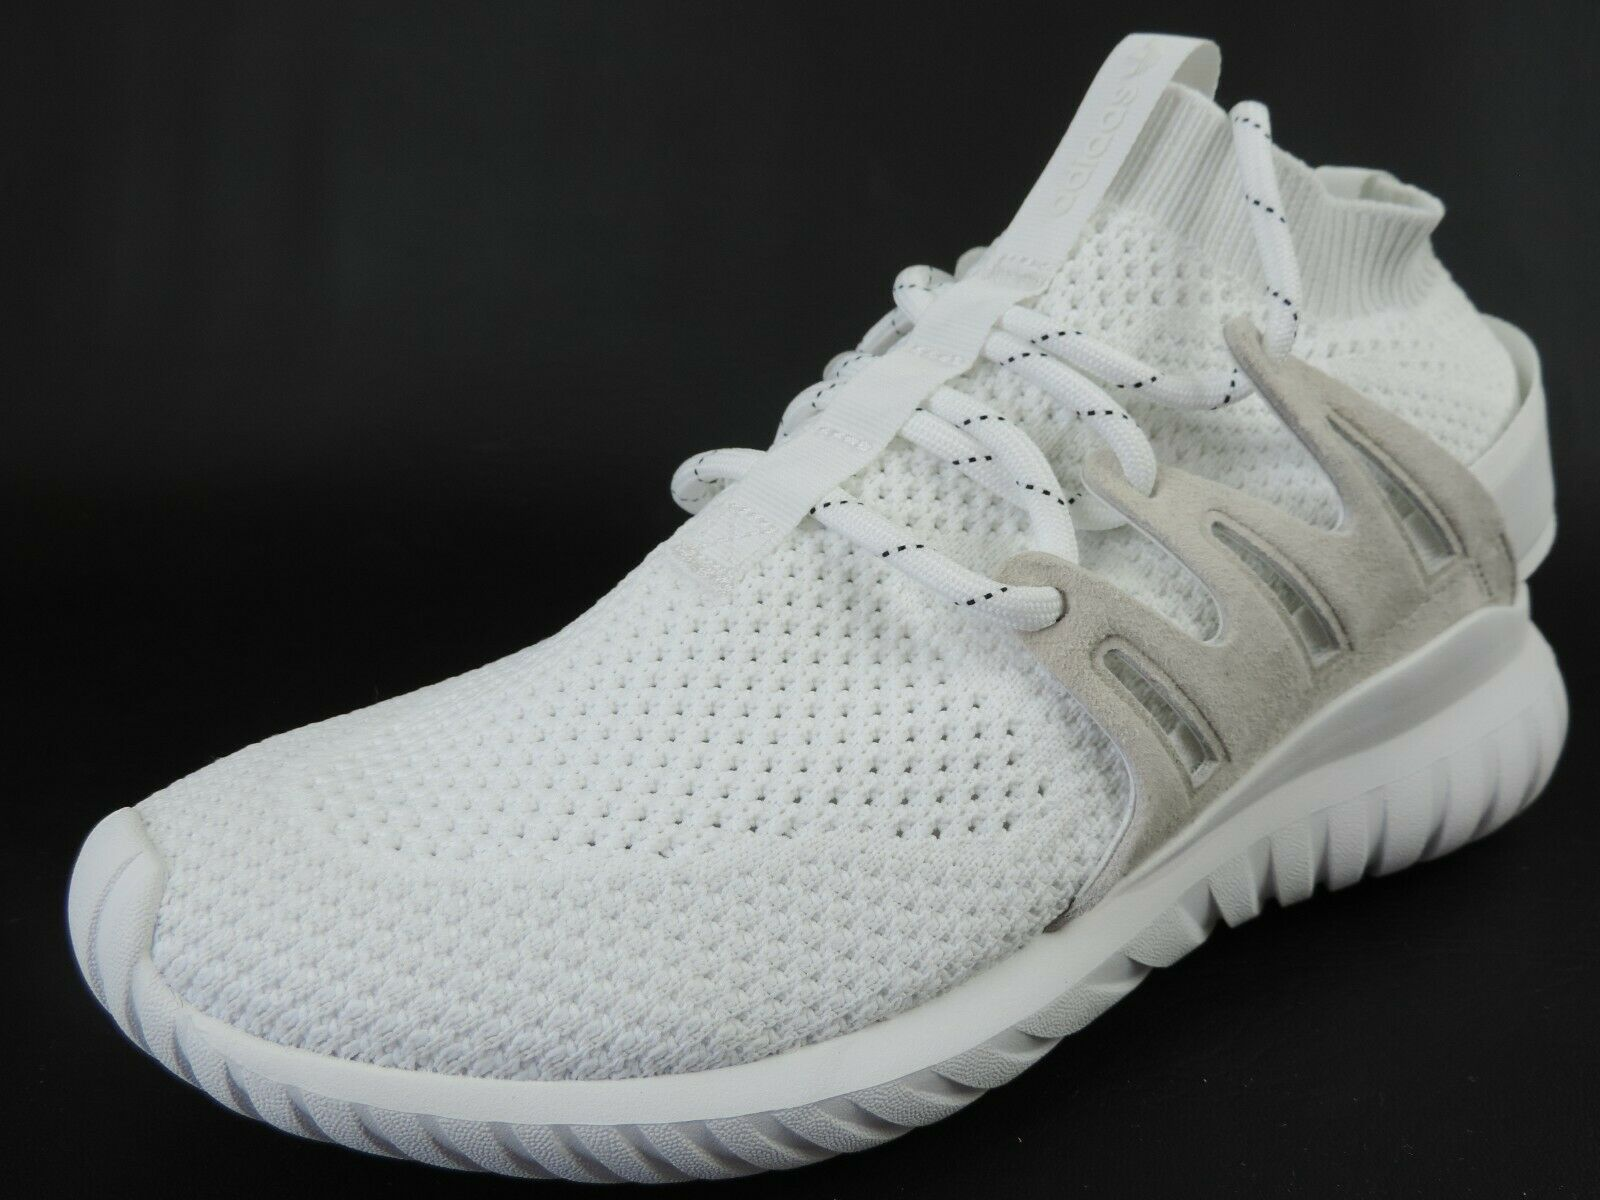 Adidas Tubular Nova PK S80106 Mens Shoes White Running Shoes Mesh Athletic Rare